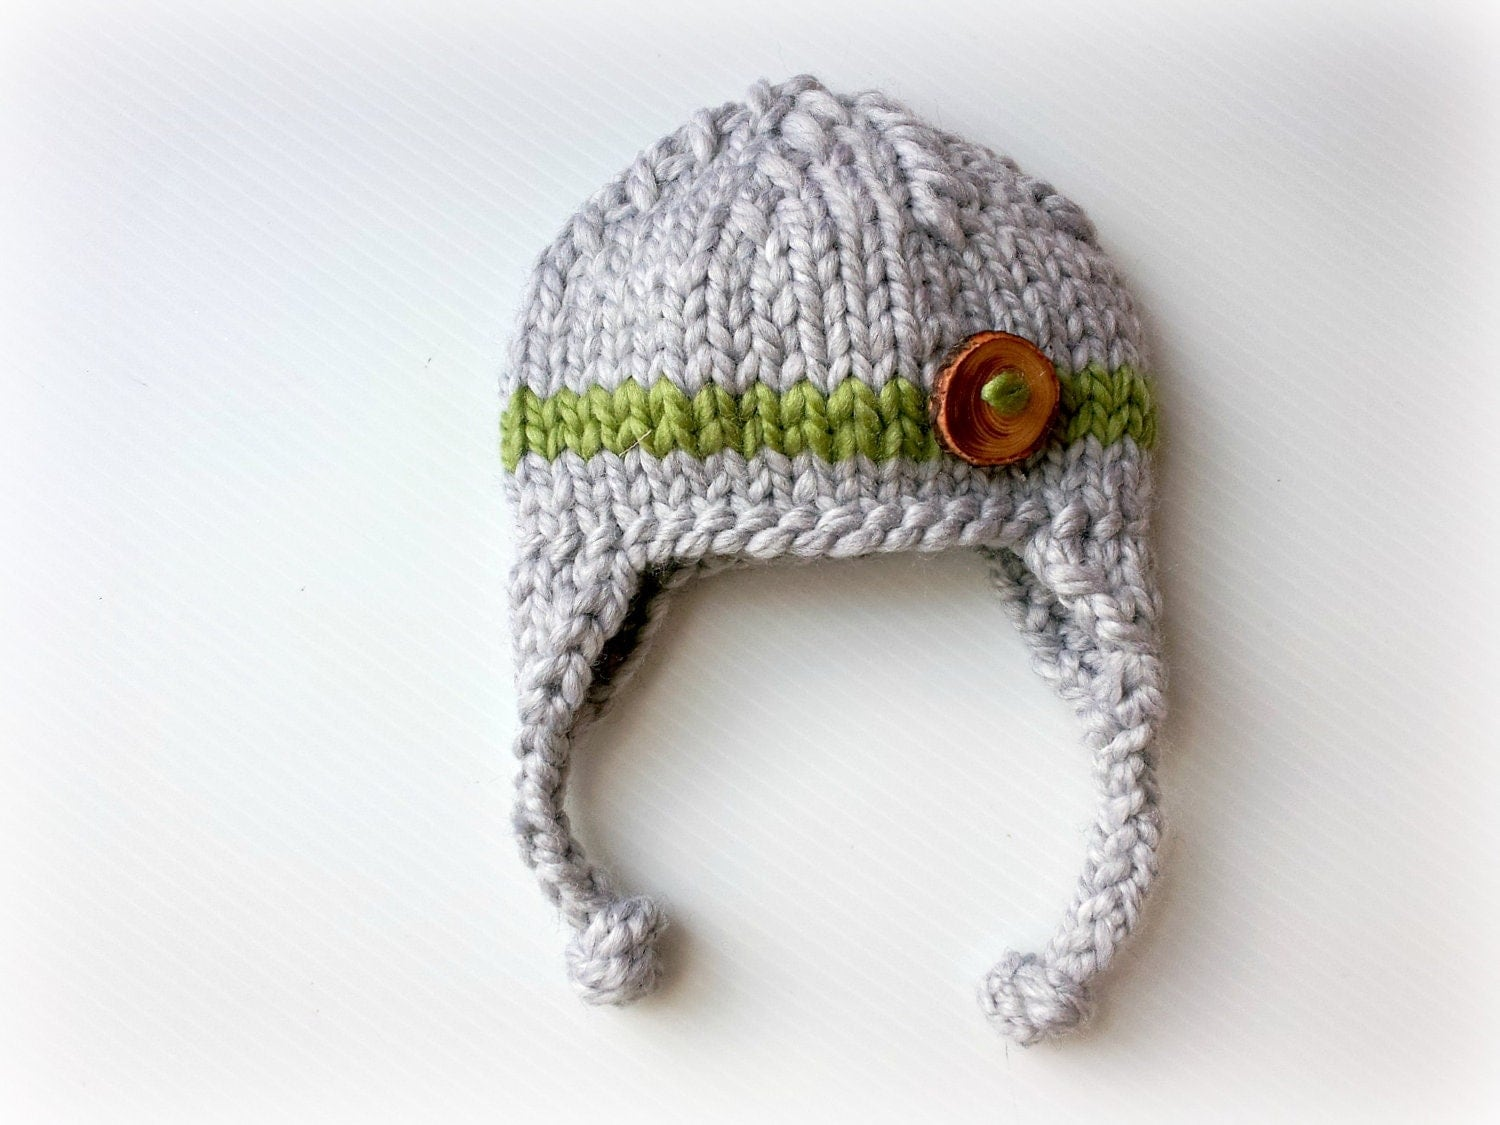 gray green stripe baby boy knitted hat, newborn photography prop, baby shower gift, baby photo prop, infant earflap beanie - PreciousLittleBaby